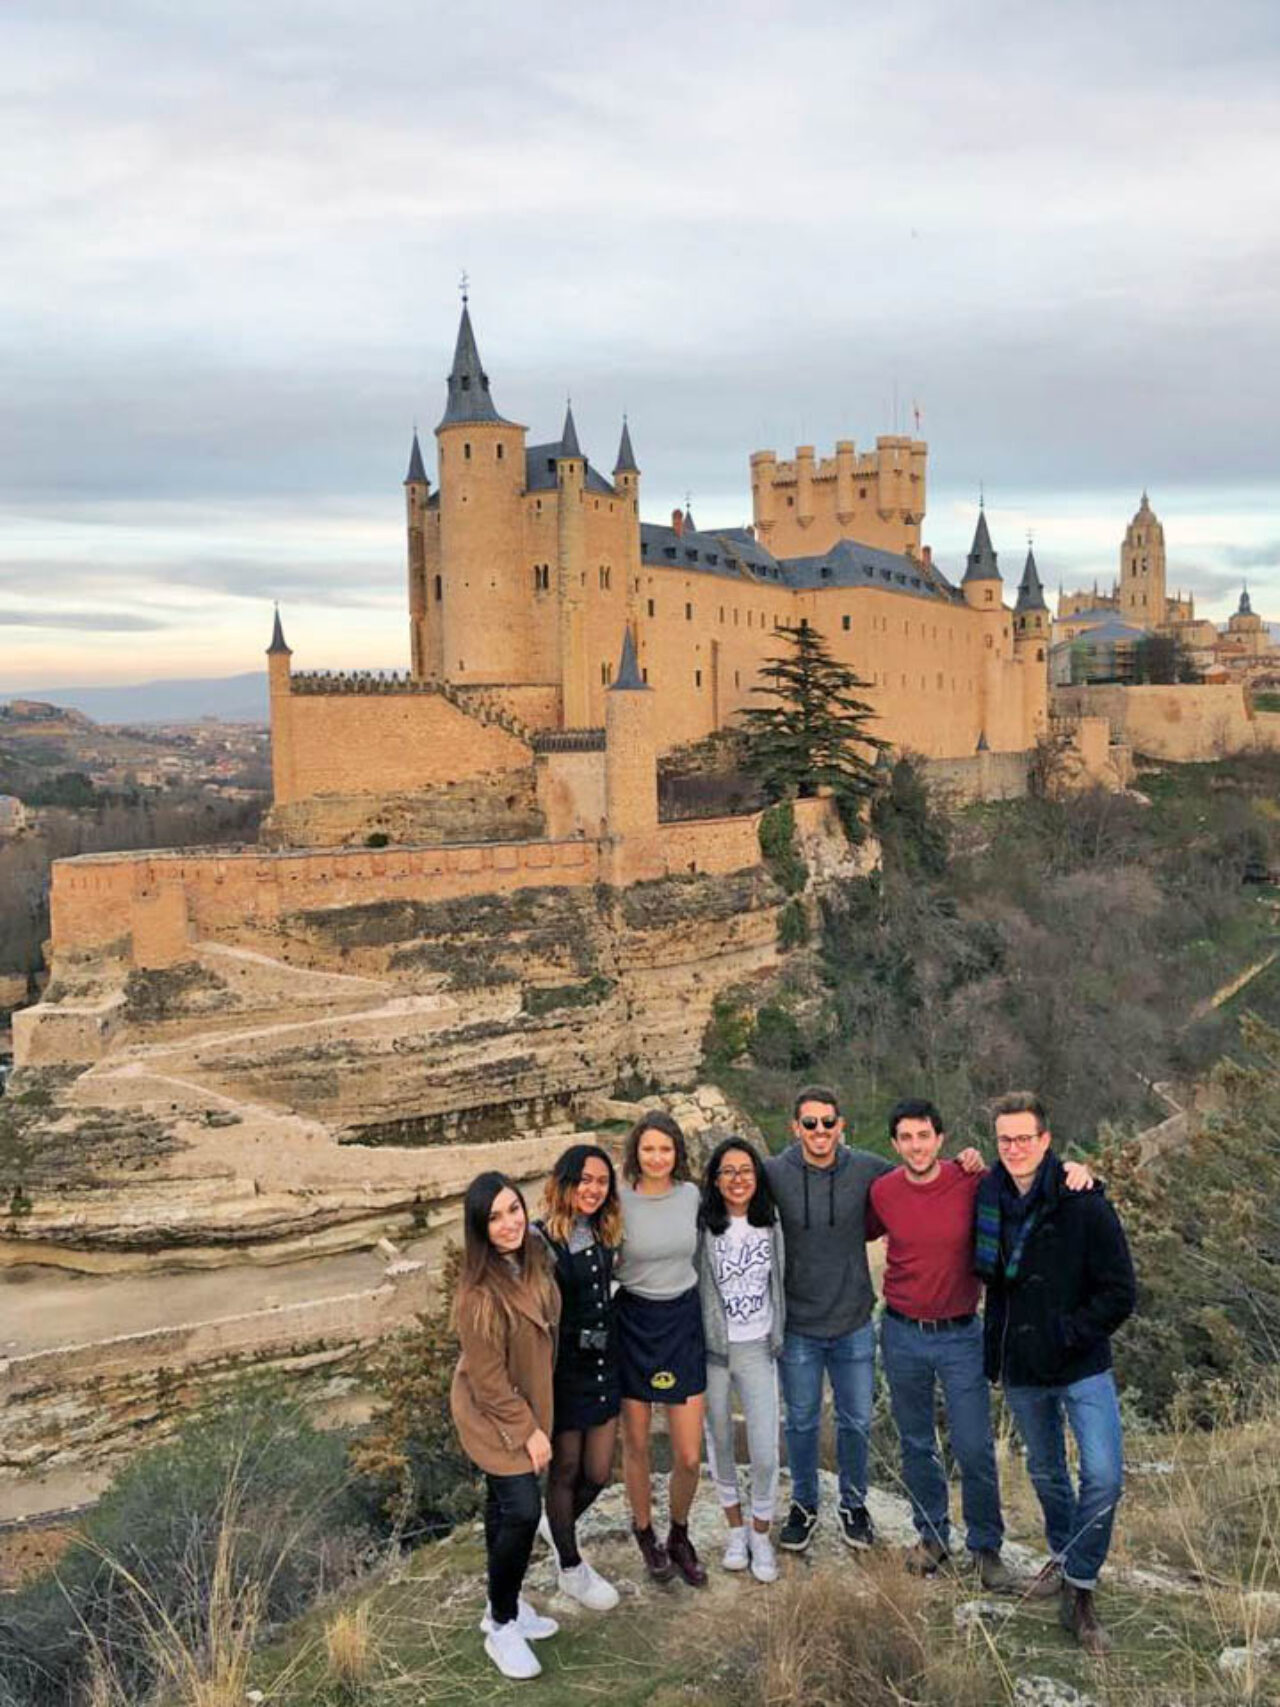 Together with a group of friends, Ediza Koch explored Segovia, a Spanish city north of Madrid